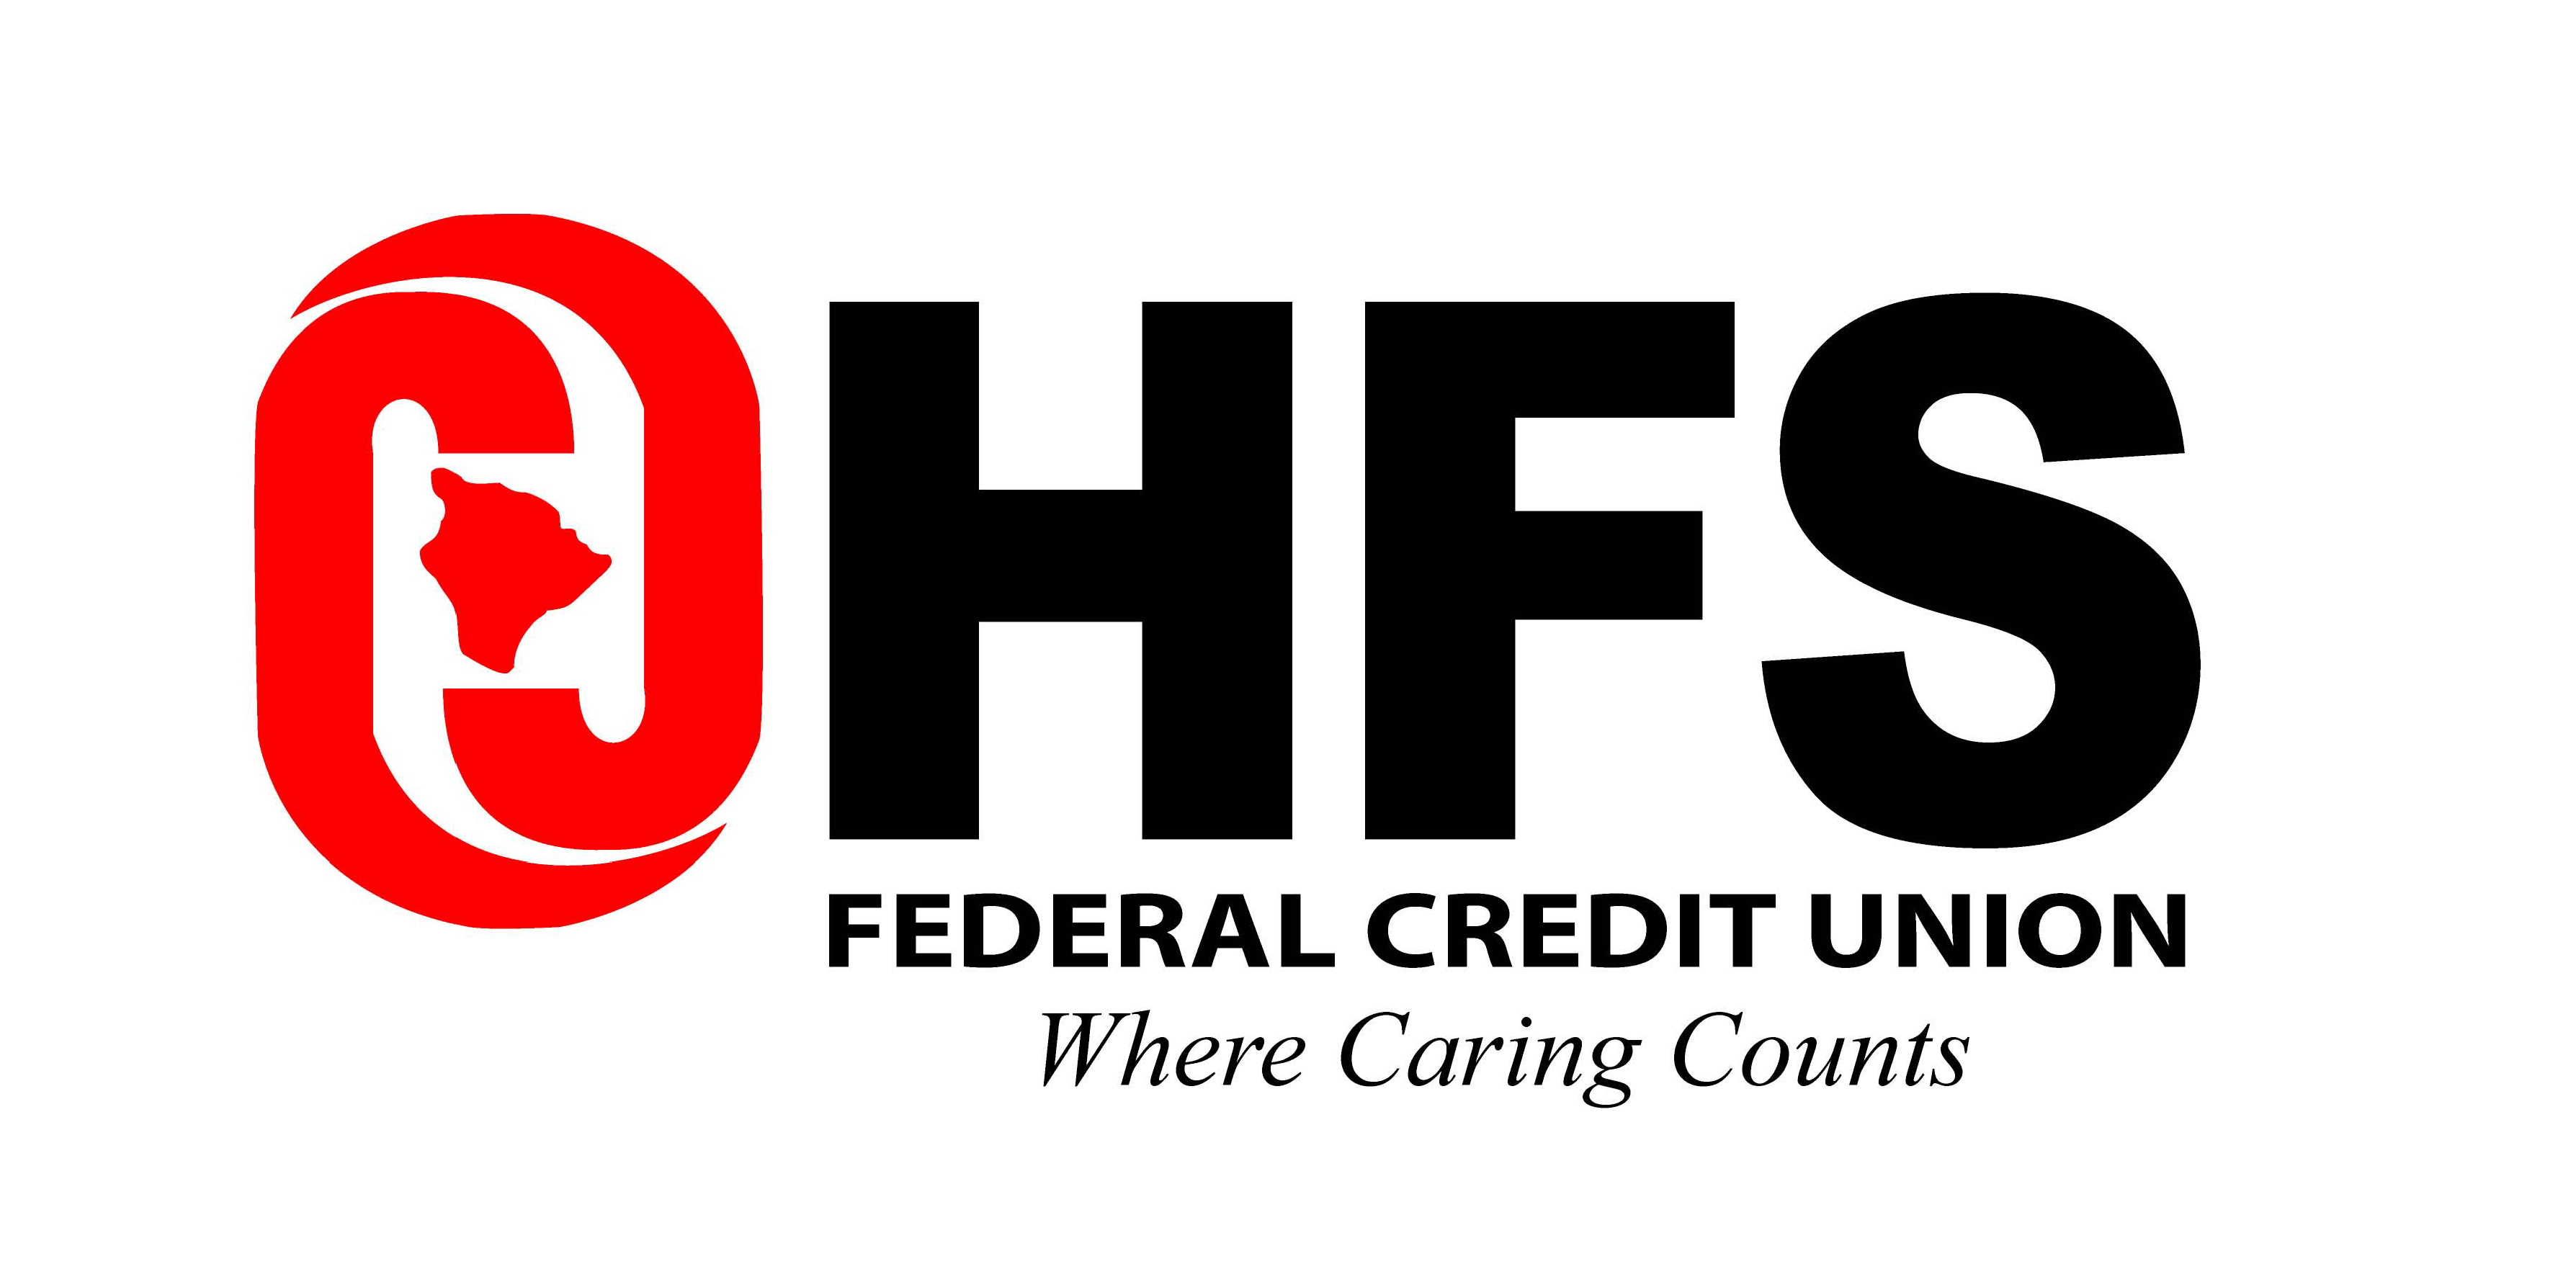 Big Island Federal Credit Union Scholarship